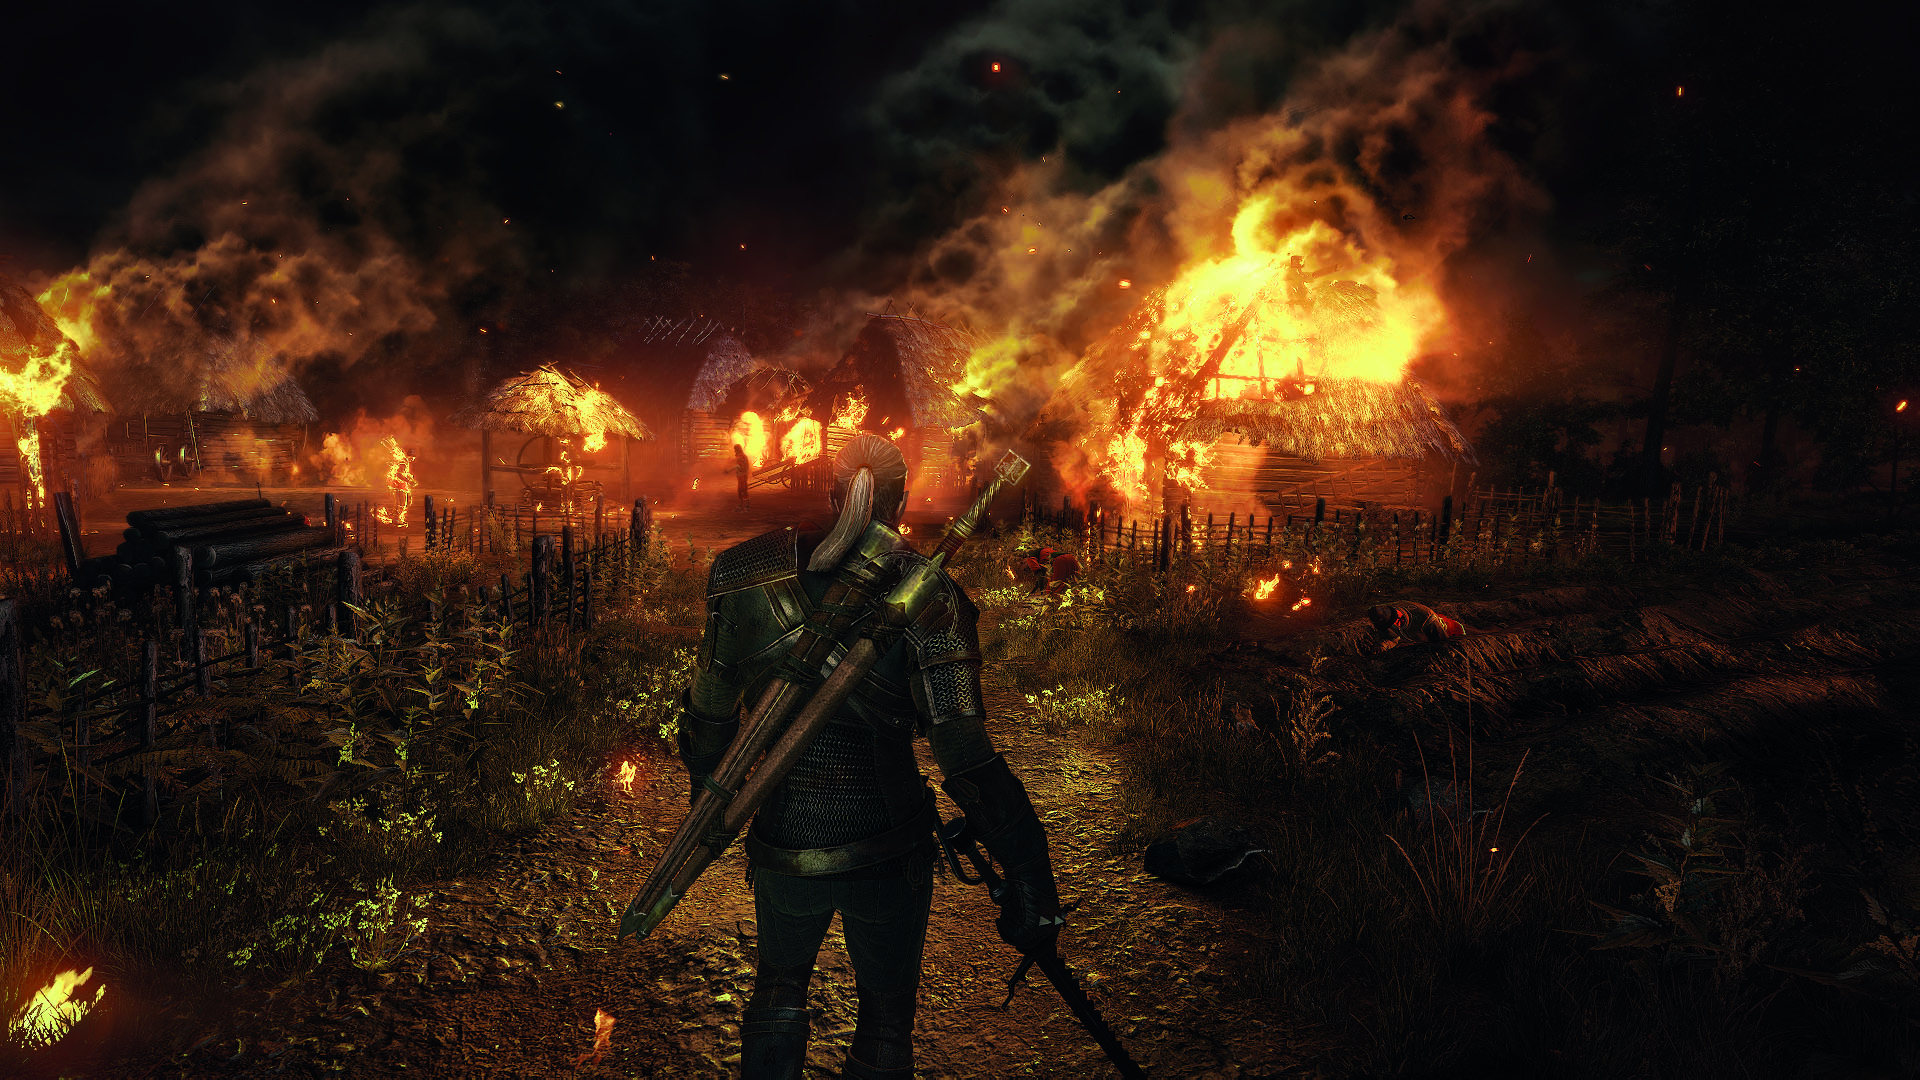 6241_The_Witcher_3_Wild_Hunt_Burning_Village.jpg